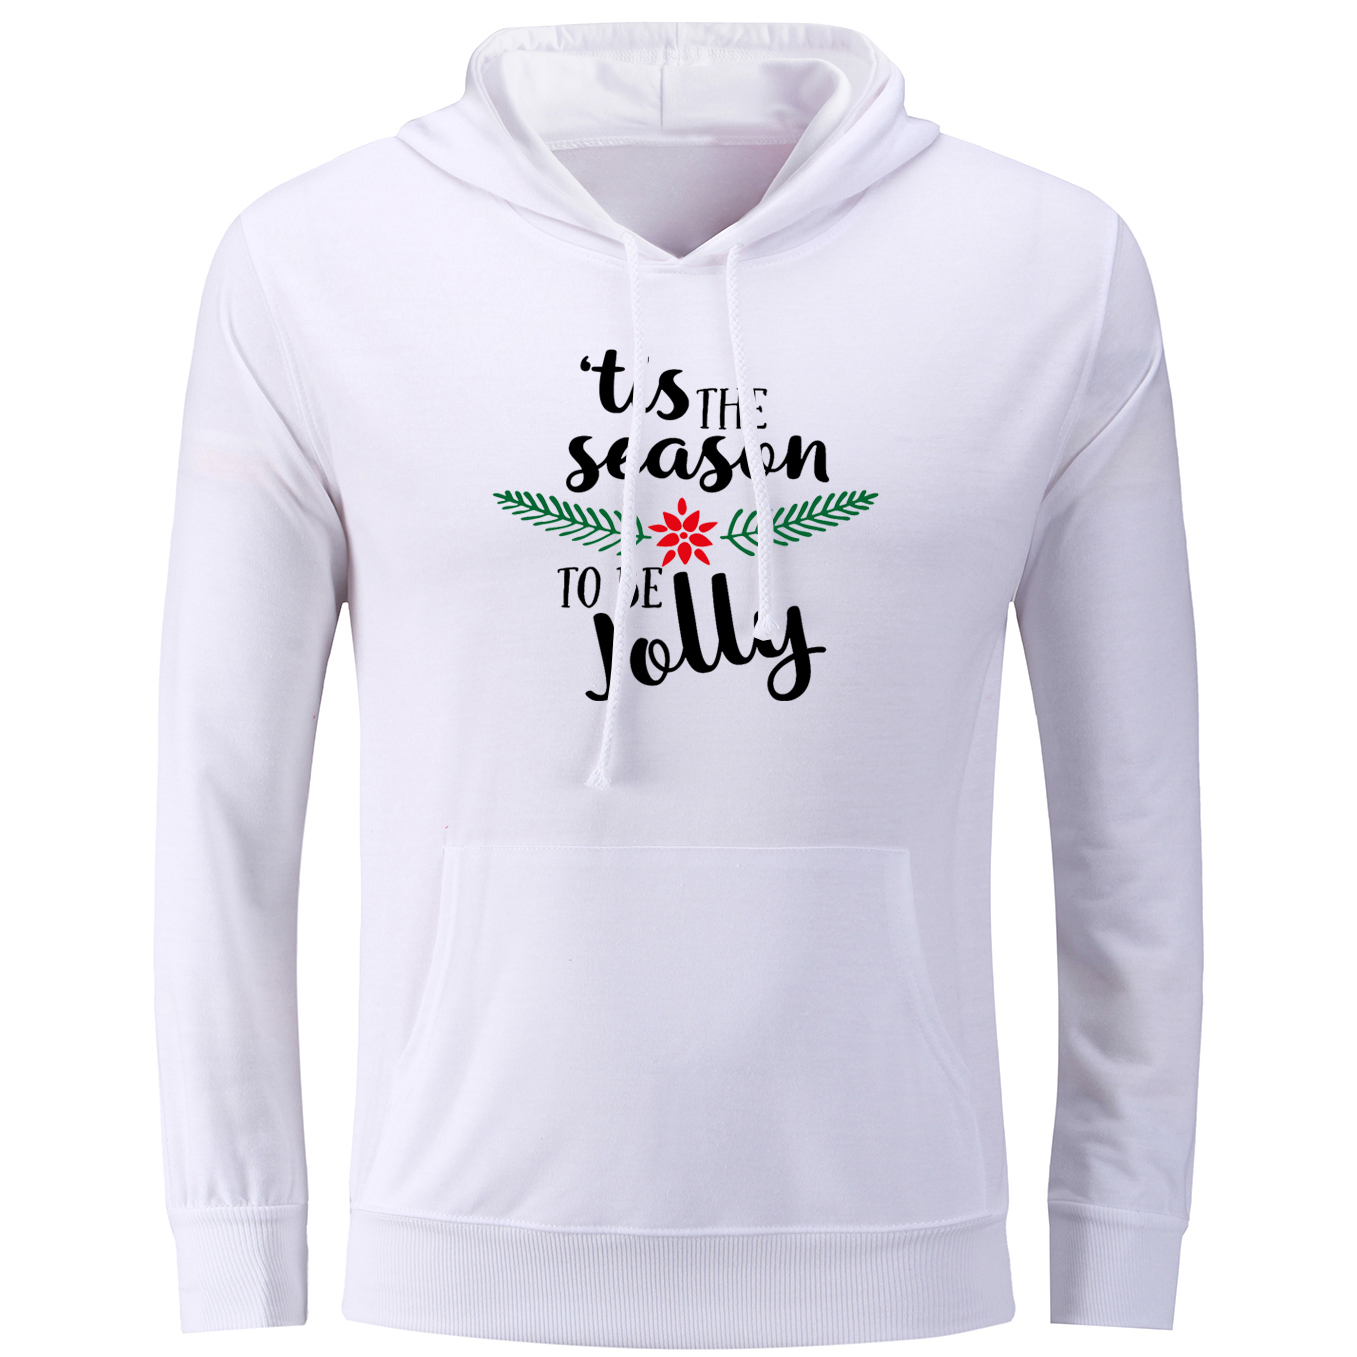 New Arrival Tis the season to be Jolly Print Hoodies Men Boy Casual Cotton  Sweatshirts for Women Girl Multi Color Unisex Jackets-in Hoodies    Sweatshirts ... ce944287126f